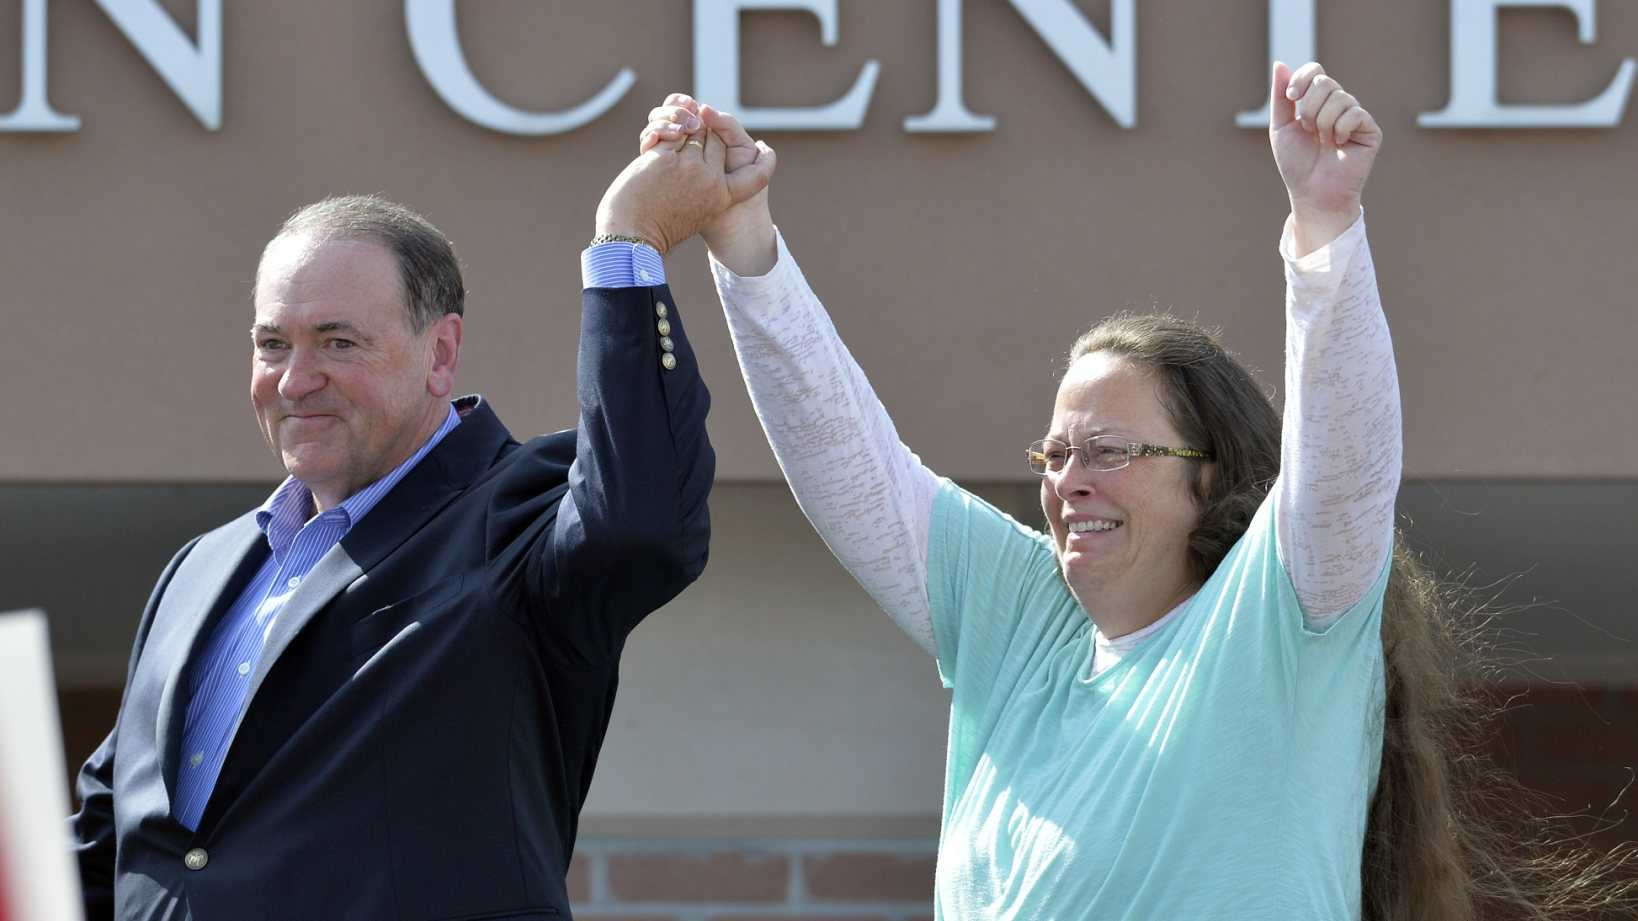 Rowan County Clerk Kim Davis, with Republican presidential candidate Mike Huckabee, left, at her side, greets the crowd after being released from the Carter County Detention Center, Tuesday, Sept. 8, 2015, in Grayson, Ky. Davis, the Kentucky county clerk who was jailed for refusing to issue marriage licenses to gay couples, was released Tuesday after five days behind bars.